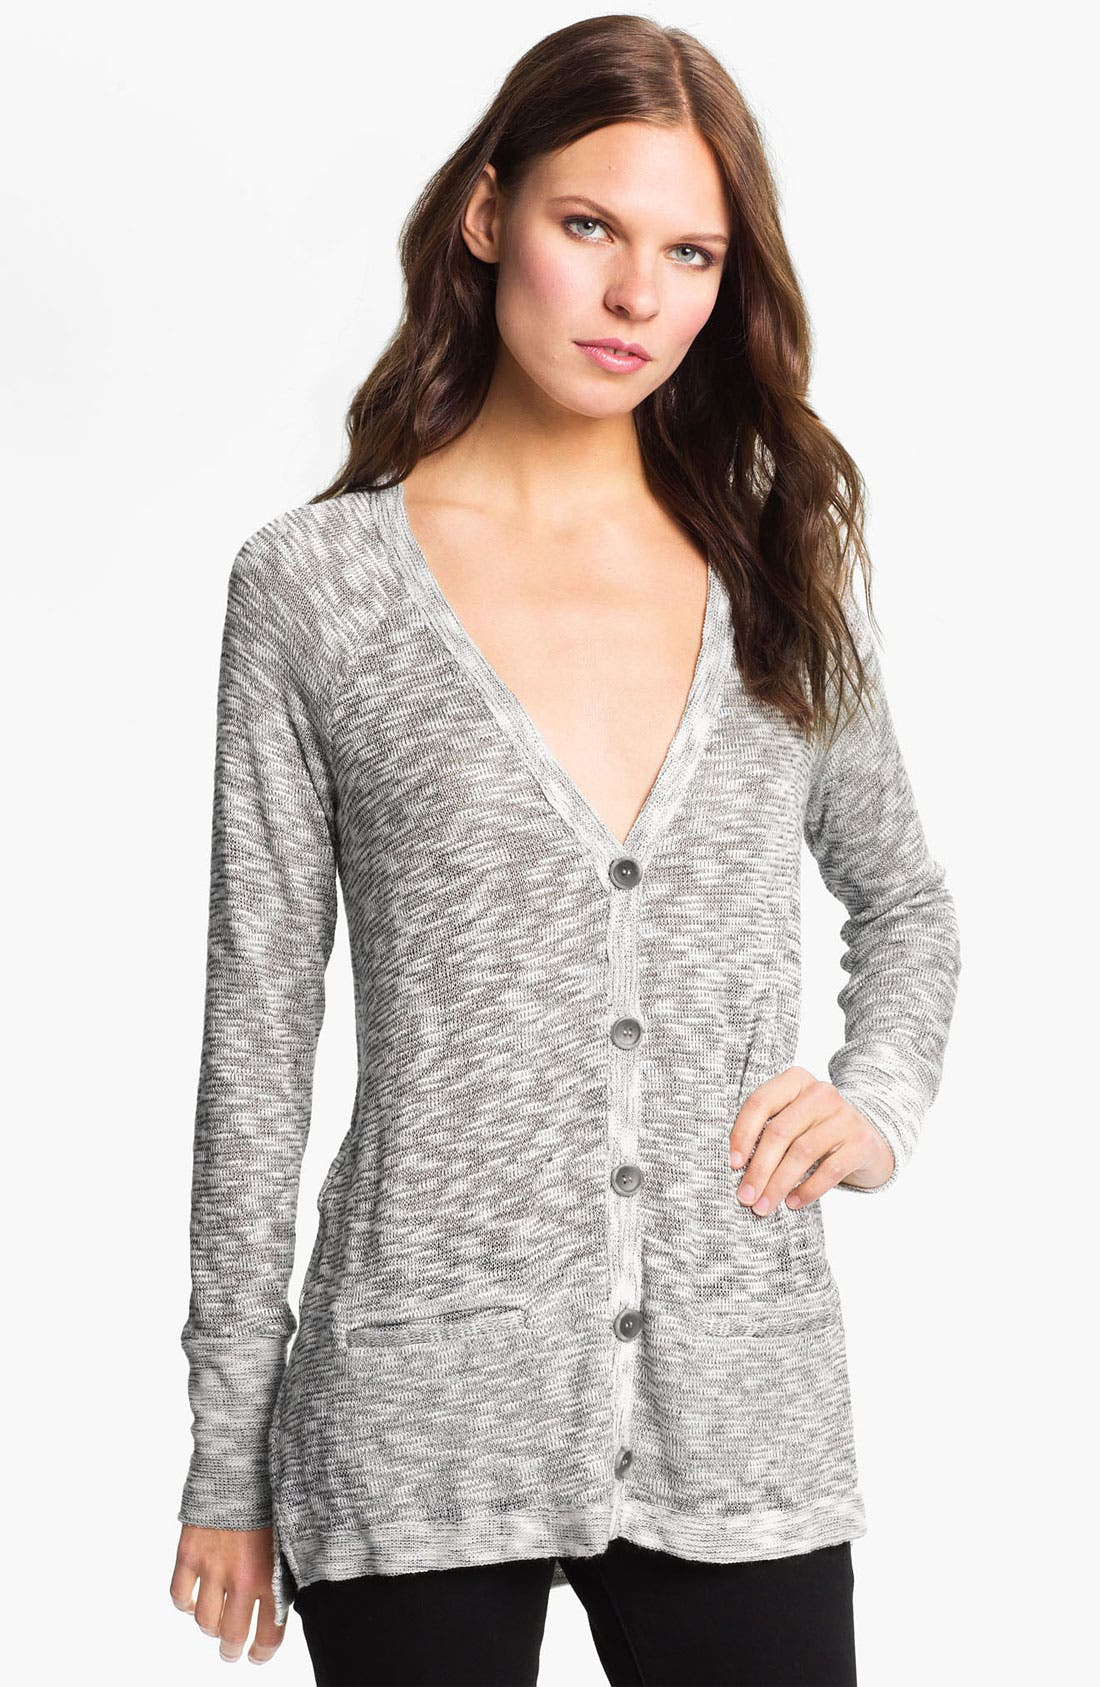 Alternate Image 1 Selected - Soft Joie 'Ambra' Metallic Slub Cardigan